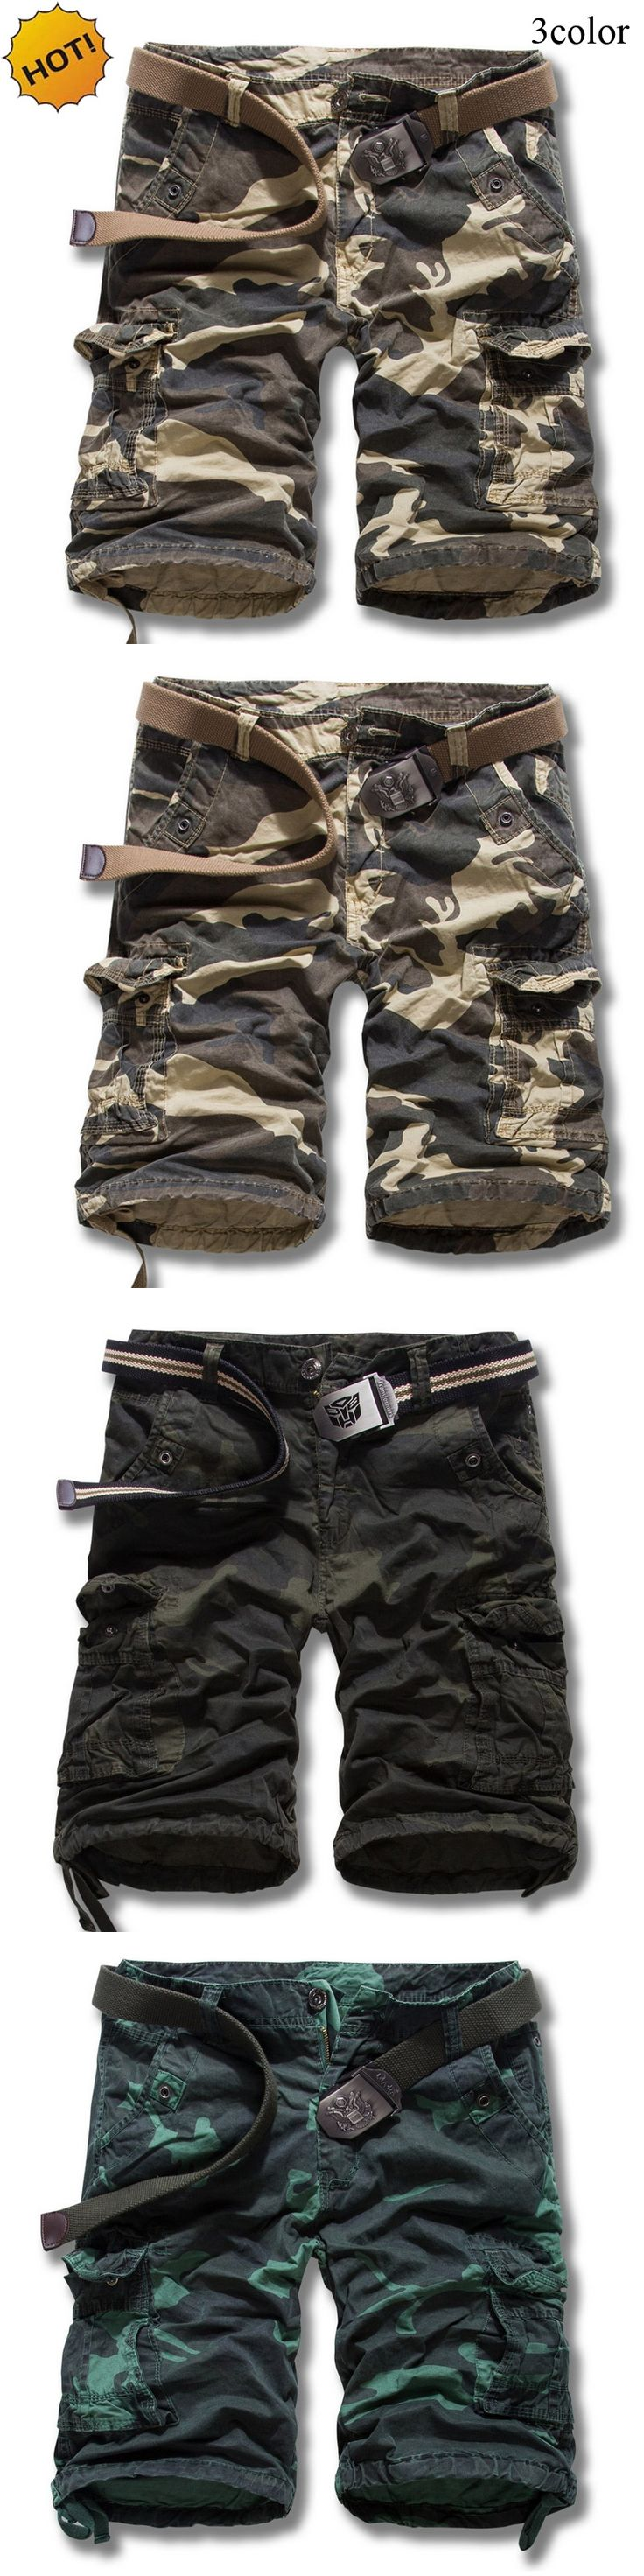 TOP Quality Summer Loose Military Cotton Straight Camouflage Cargo Shorts Men Khaki Mens Combat Overalls Short Trousers Cuff